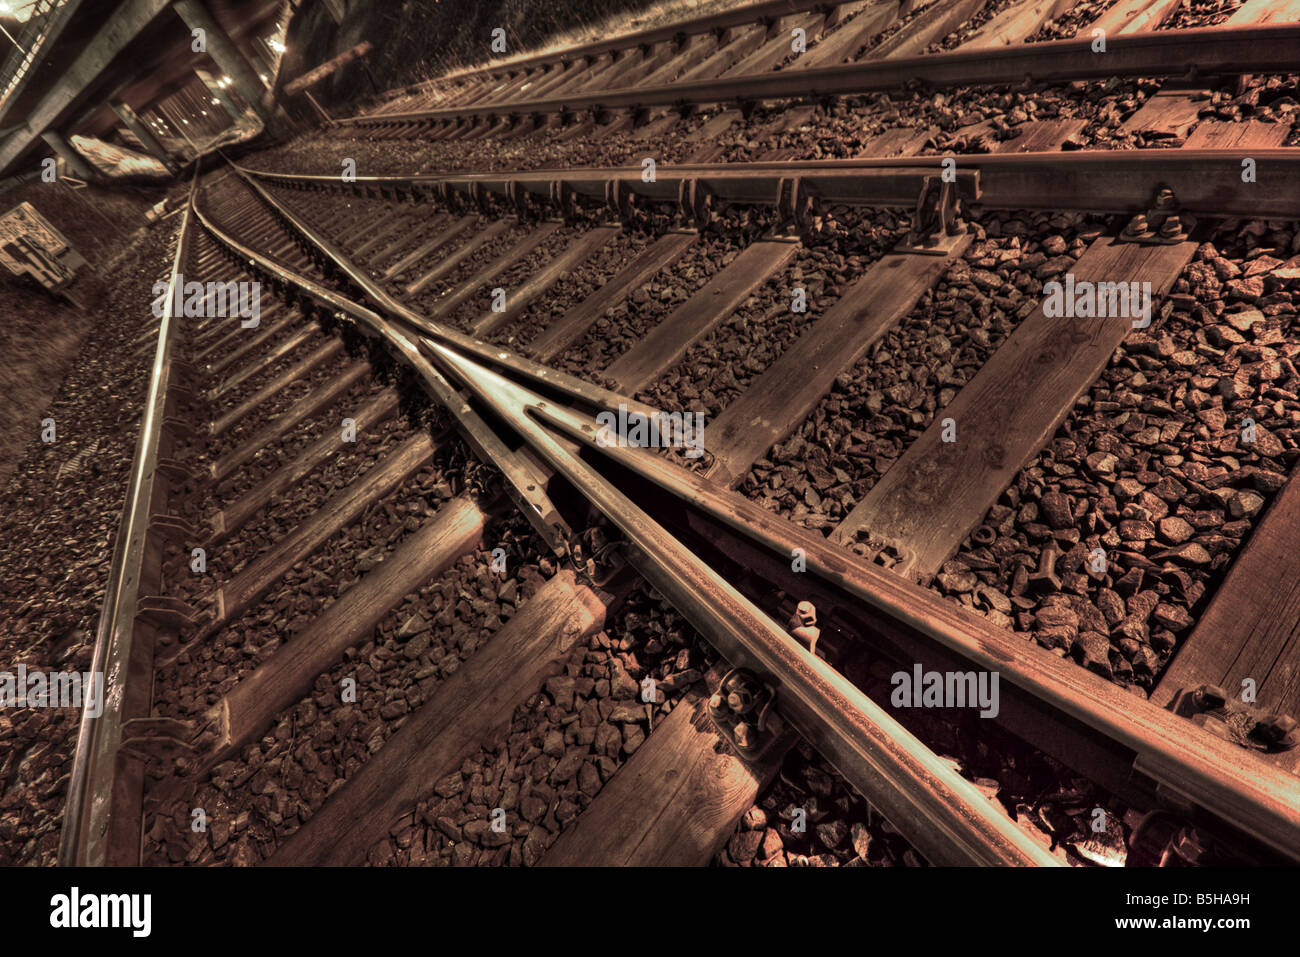 Train tracksStock Photo